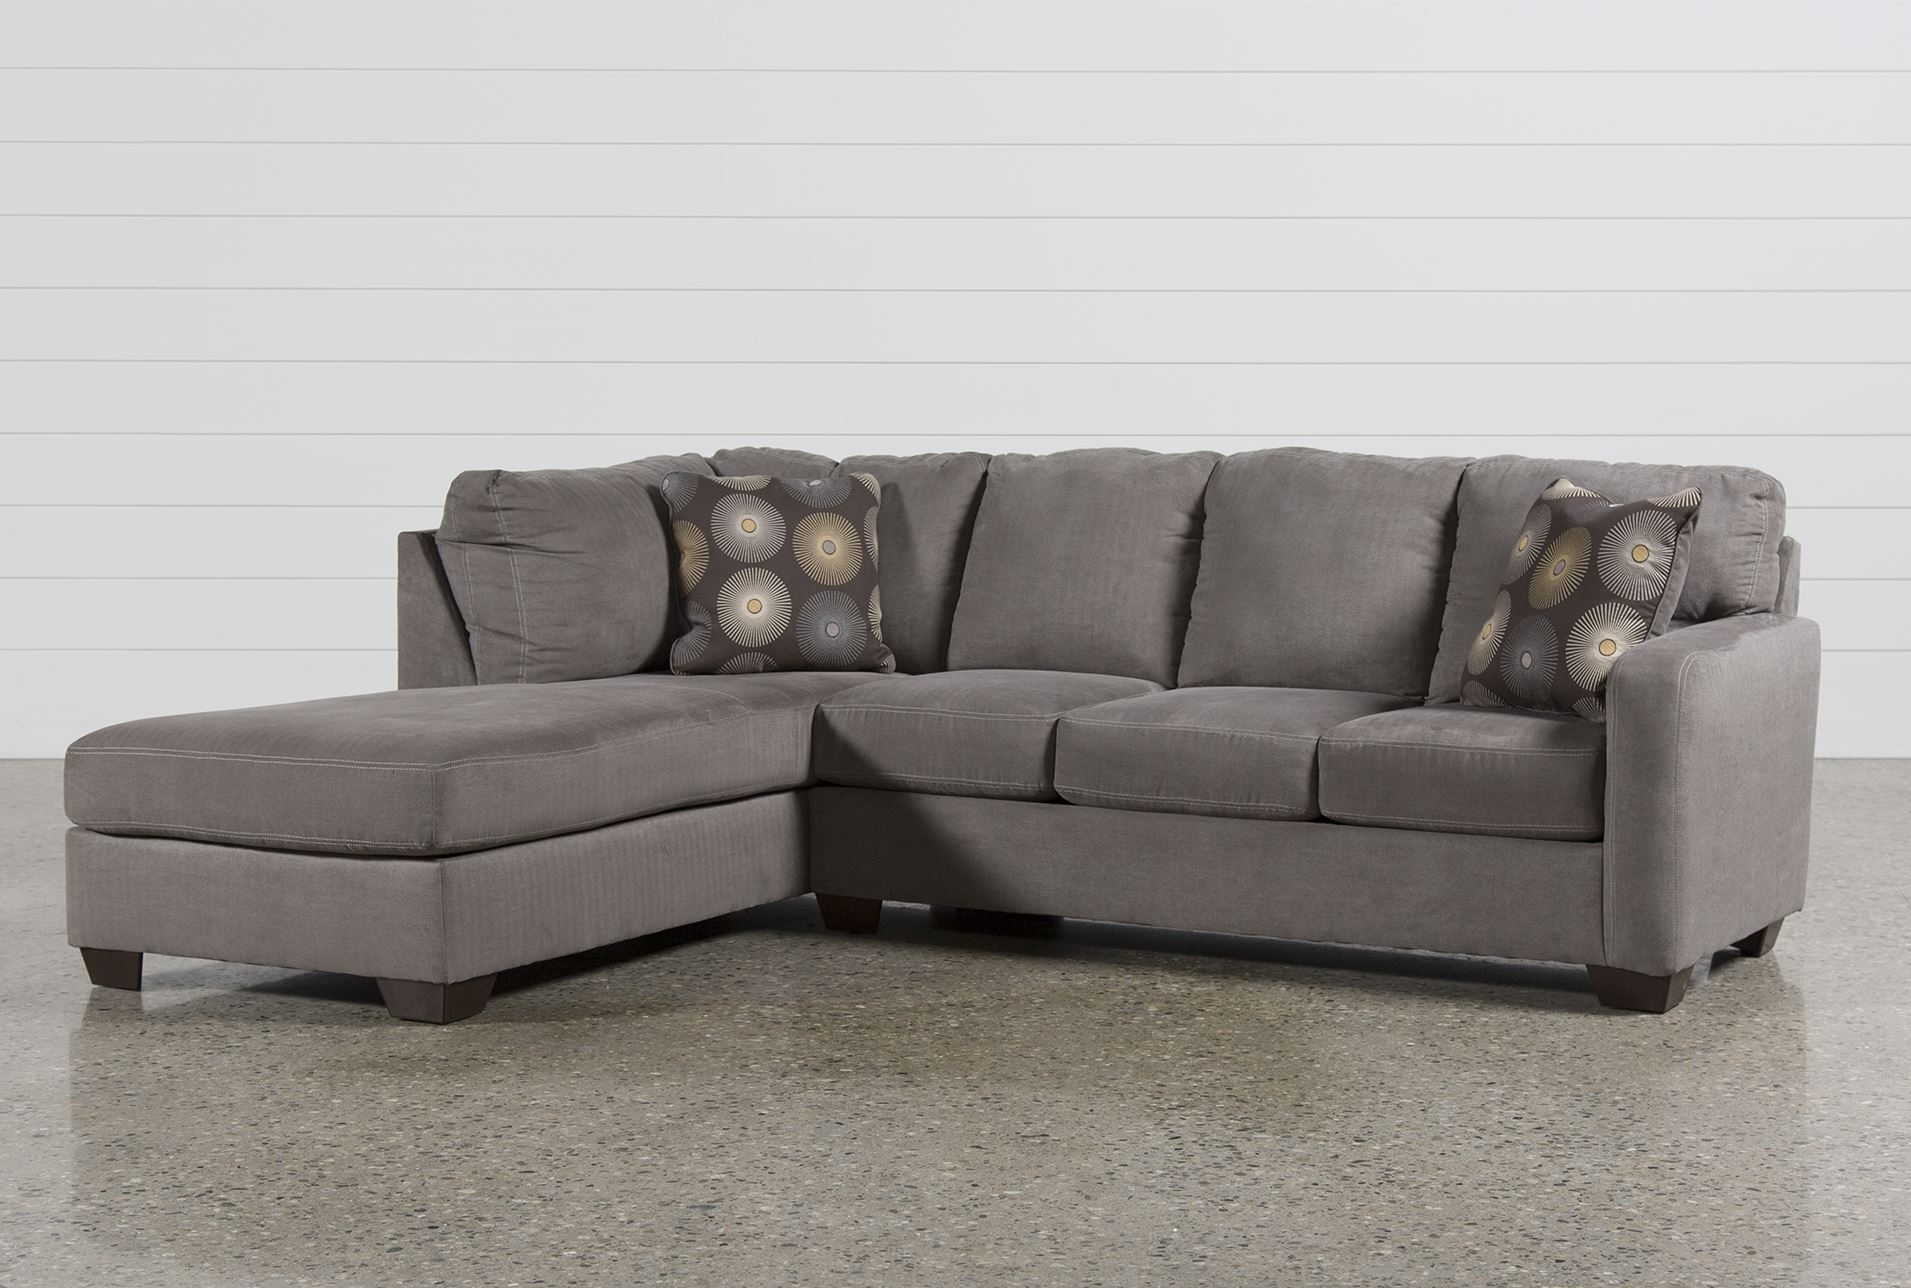 Laf Chaise Sectional Sofa | Baci Living Room with Cosmos Grey 2 Piece Sectionals With Raf Chaise (Image 15 of 30)